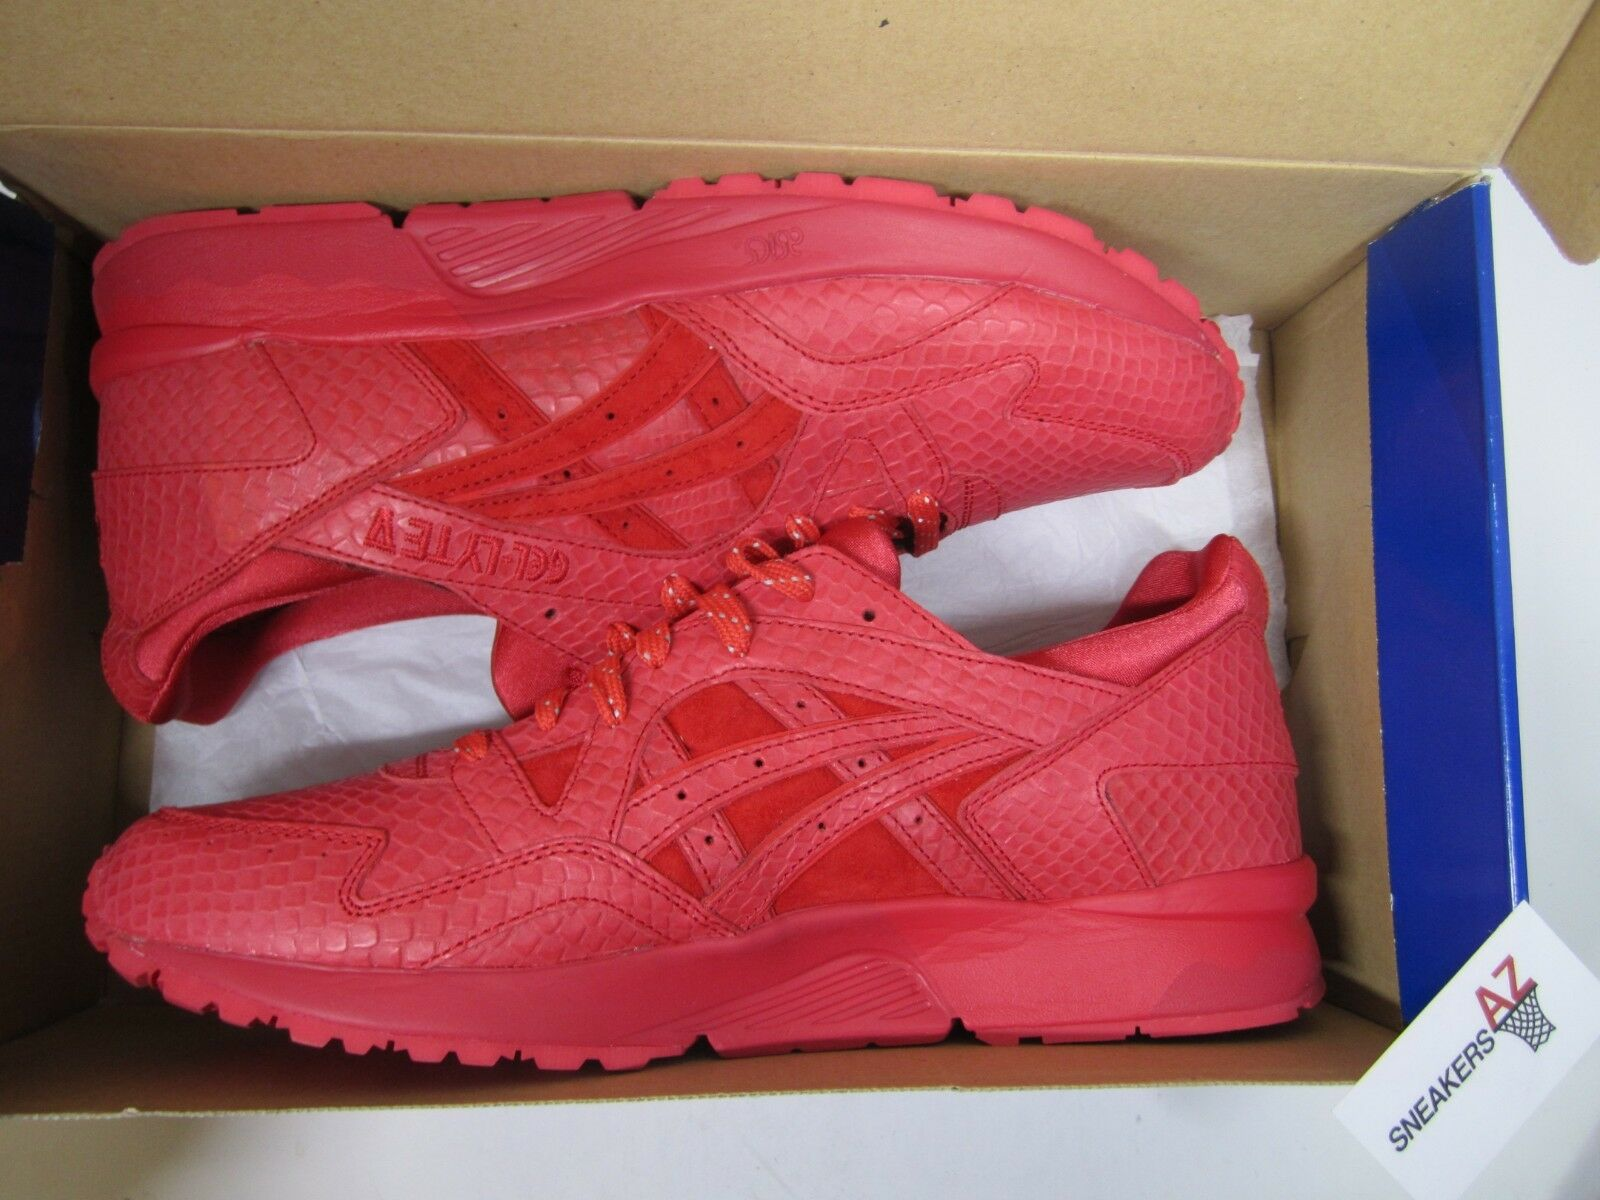 Asics Gel Lyte V 5 Red Mamba Snake DS New Size 12 H51EK-2727 + Receipt